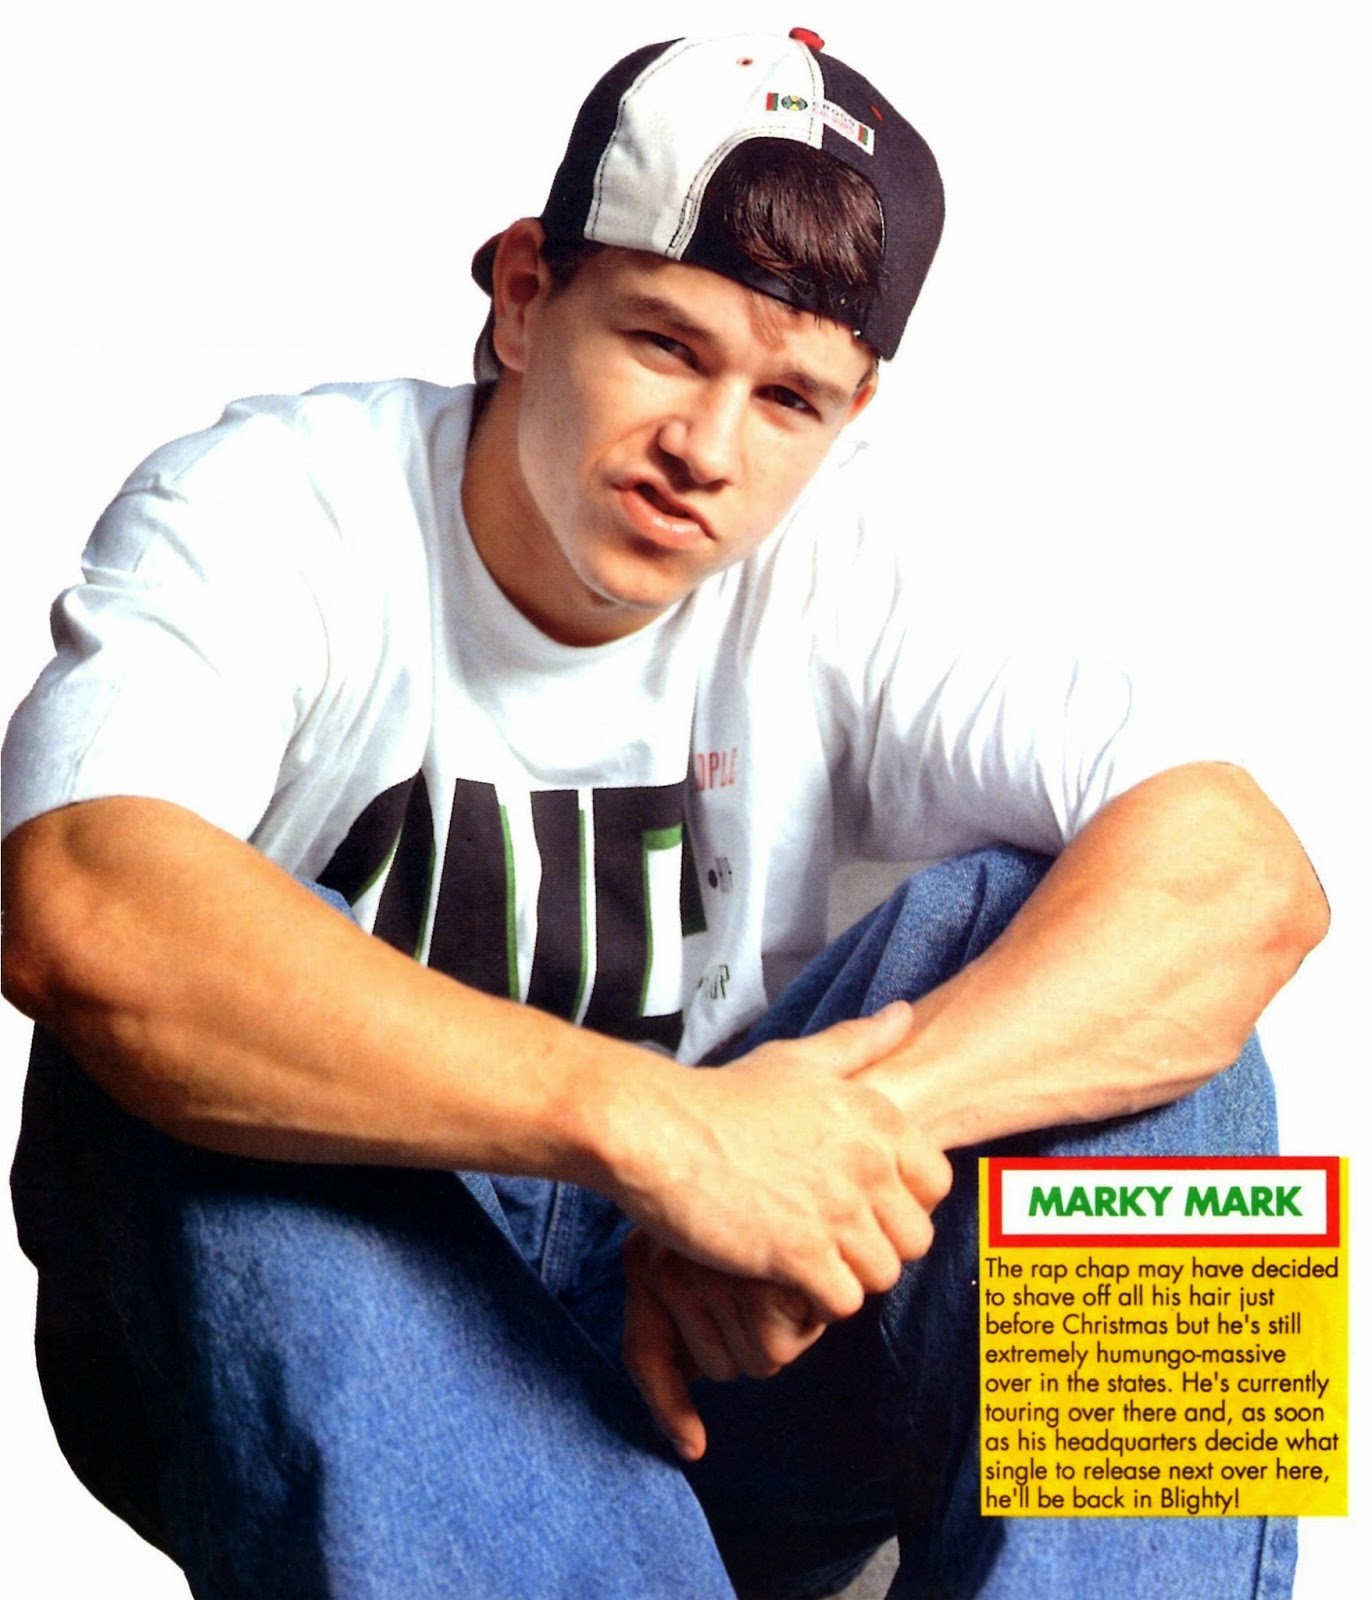 List of synonyms and antonyms the word marky mark